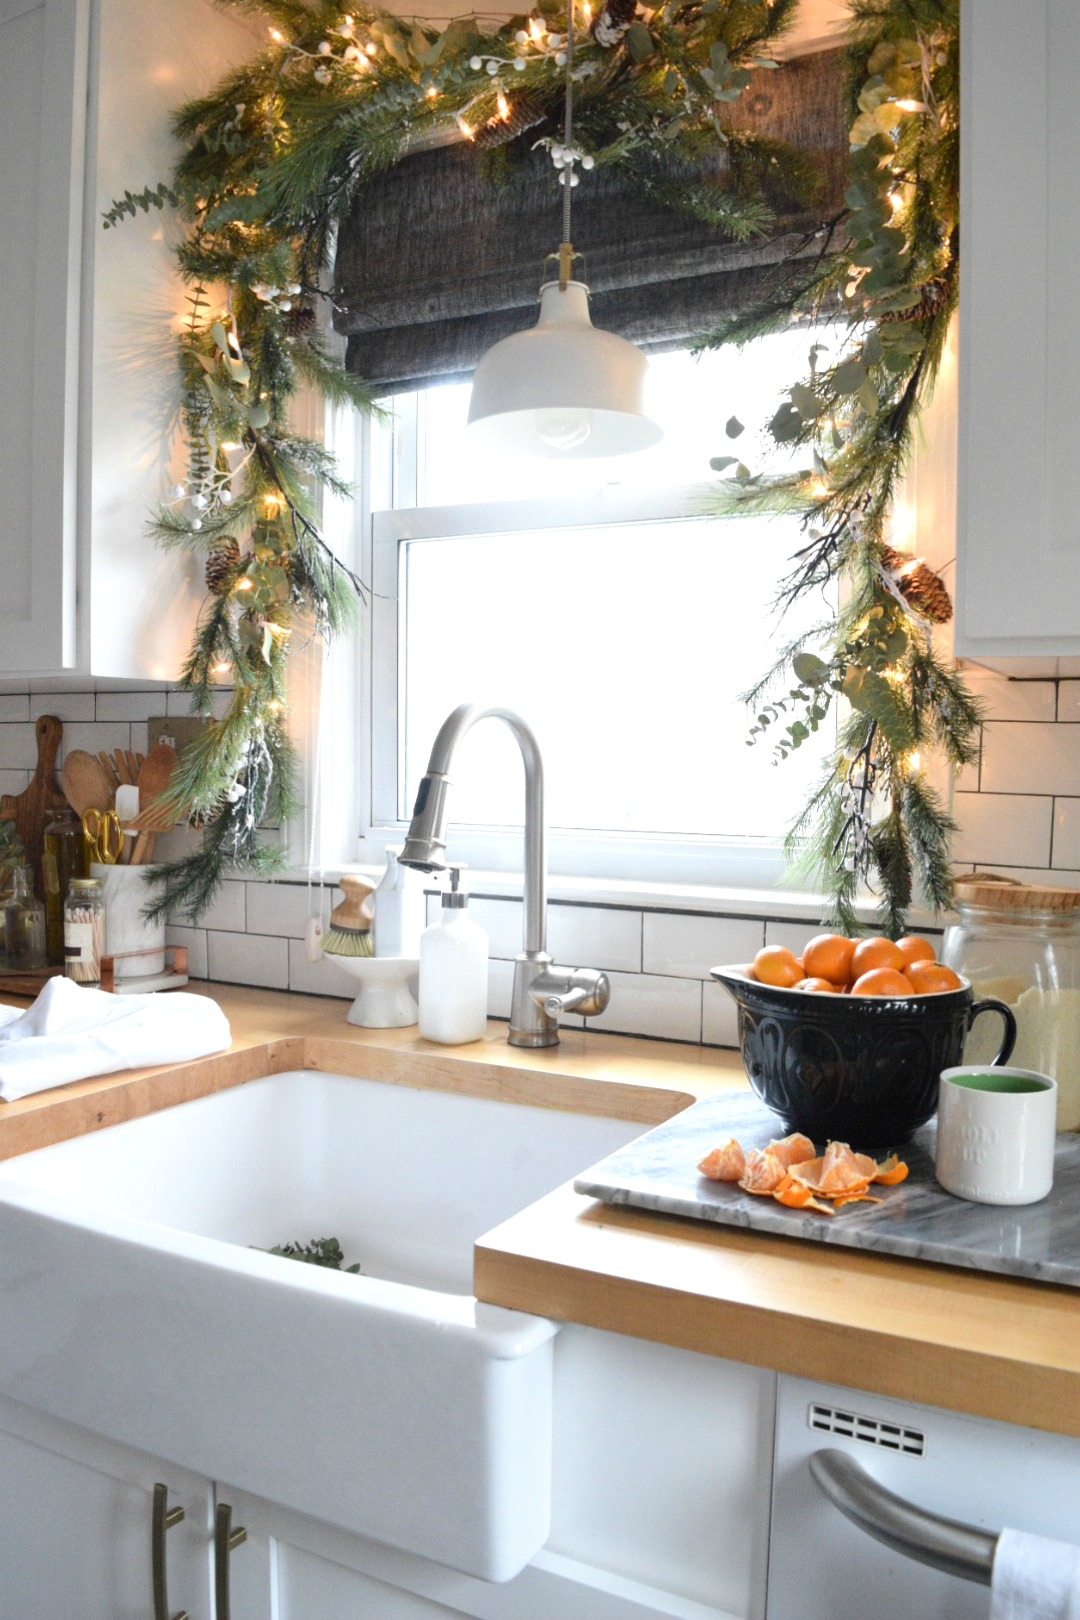 christmas in our small kitchen started